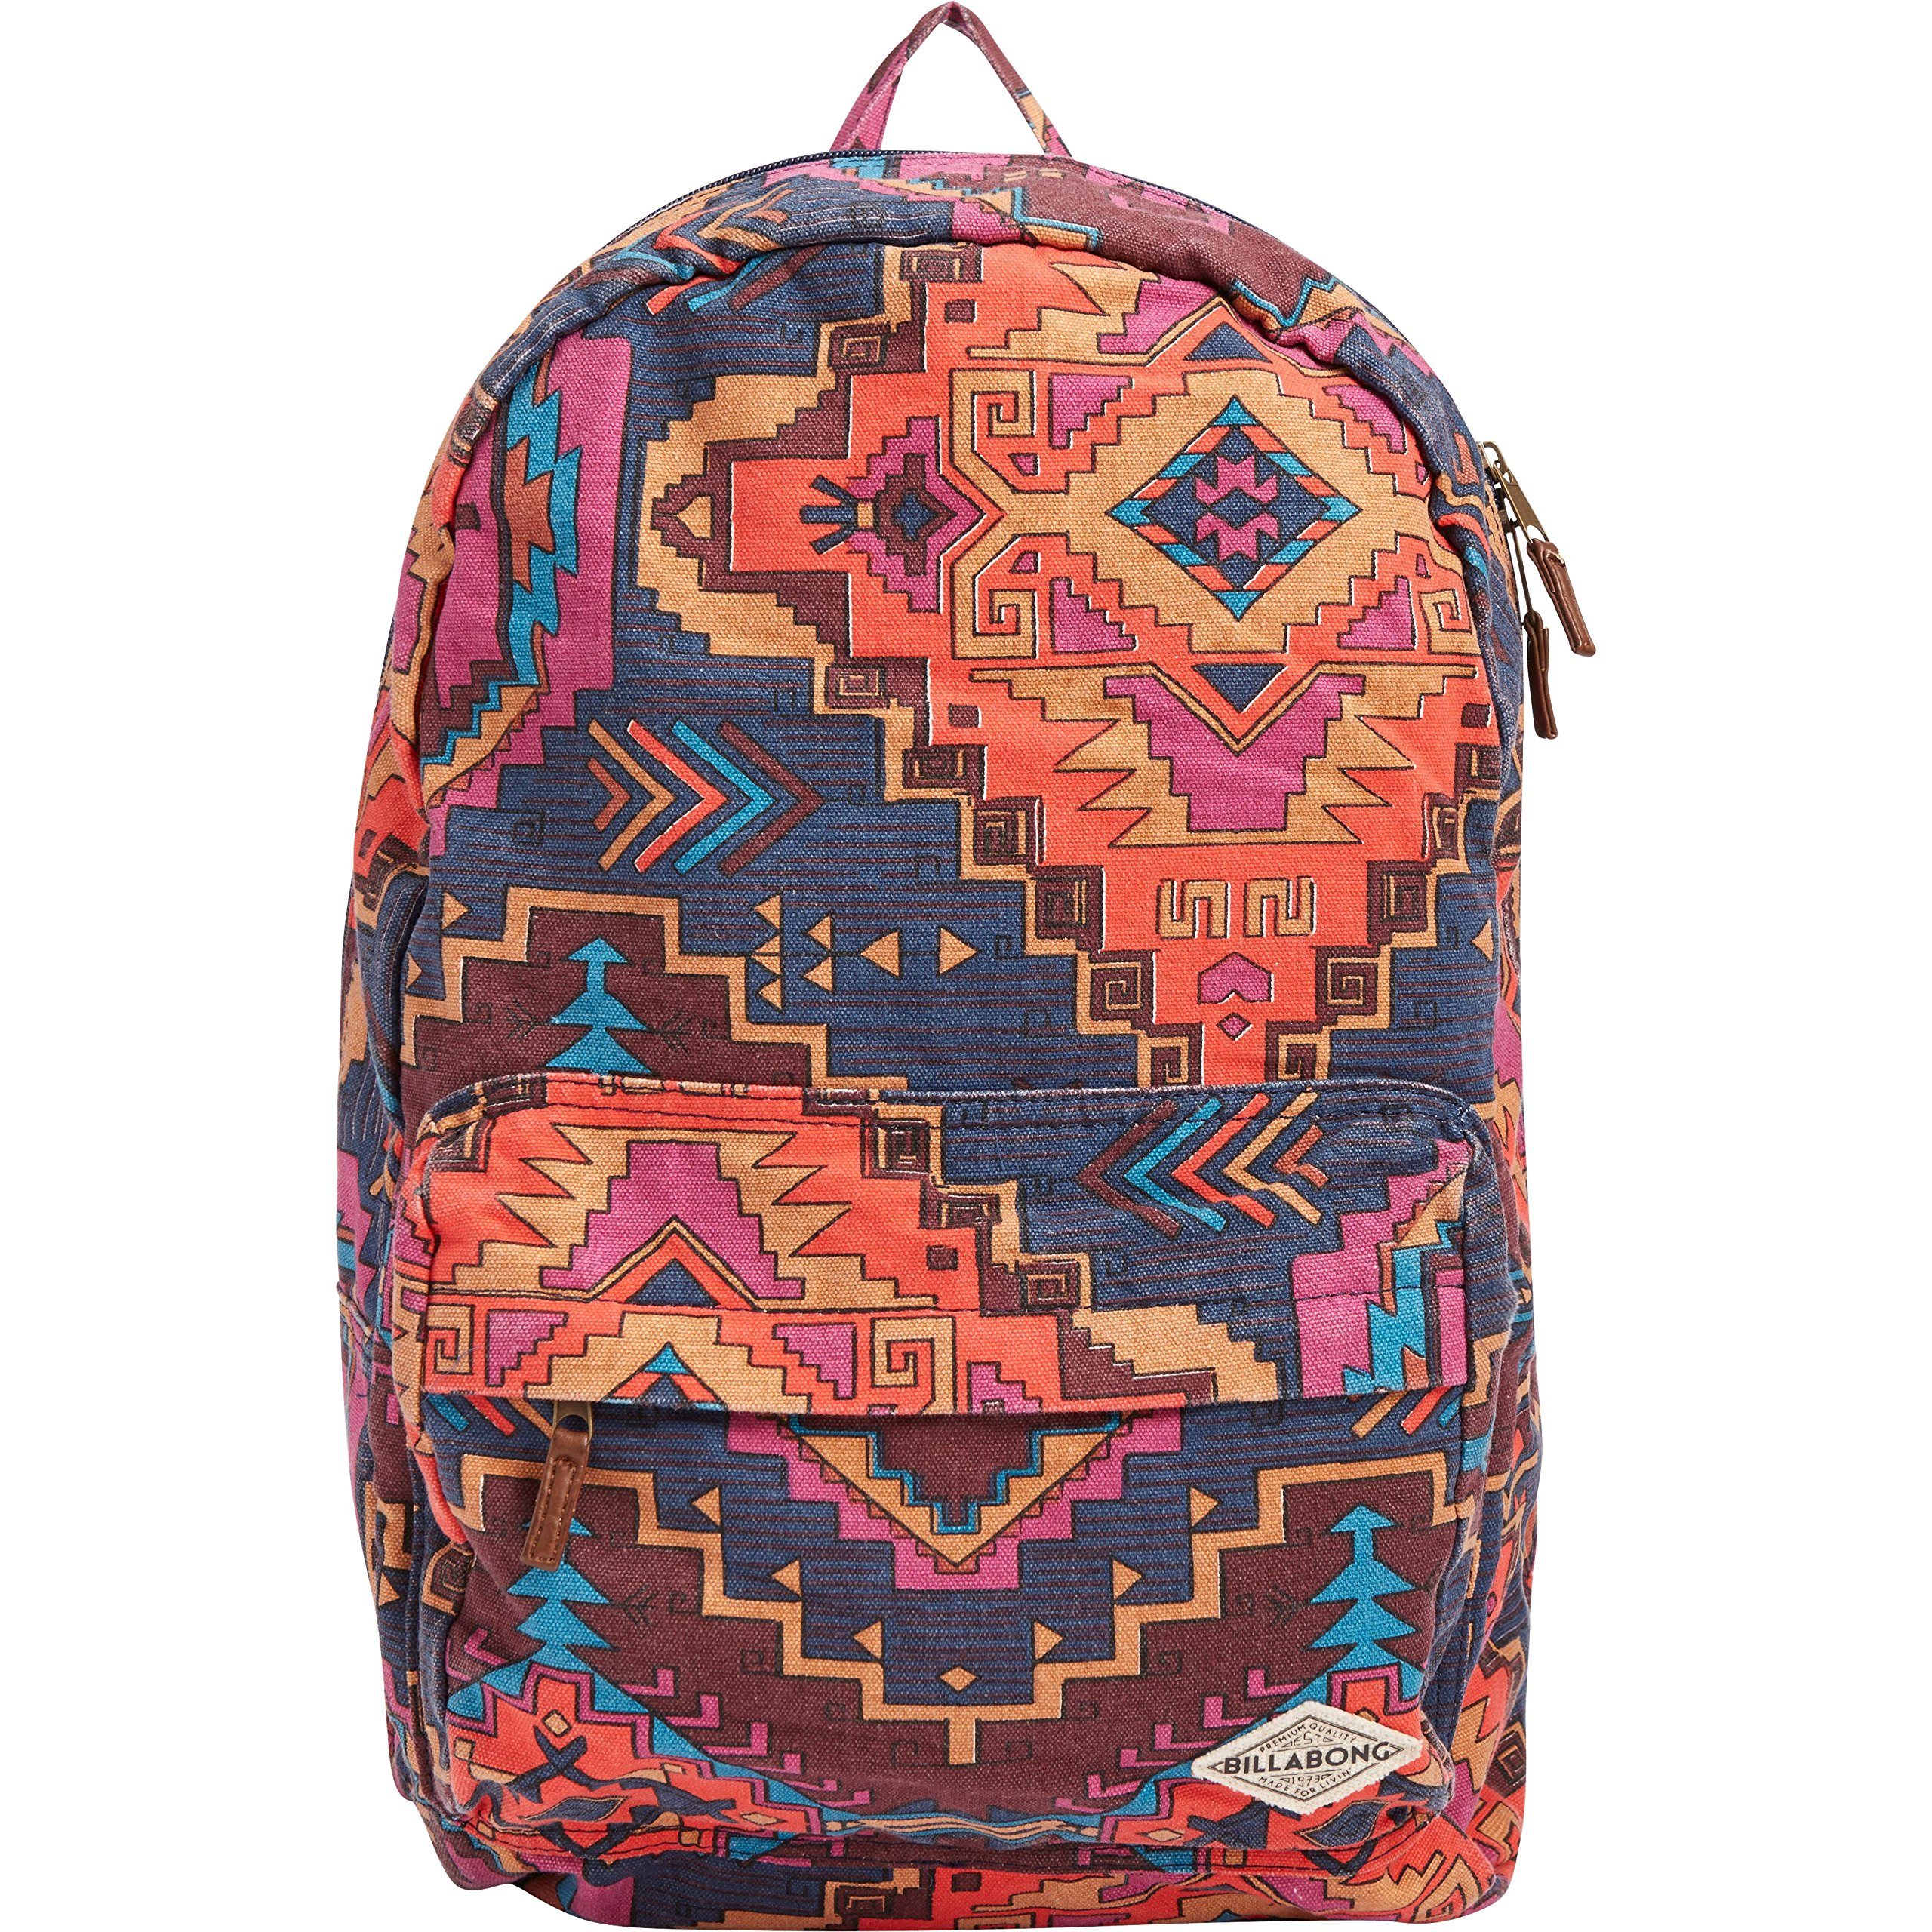 Billabong Women's Juniors Hand Over Love Backpack, Multi by Billabong (Image #1)